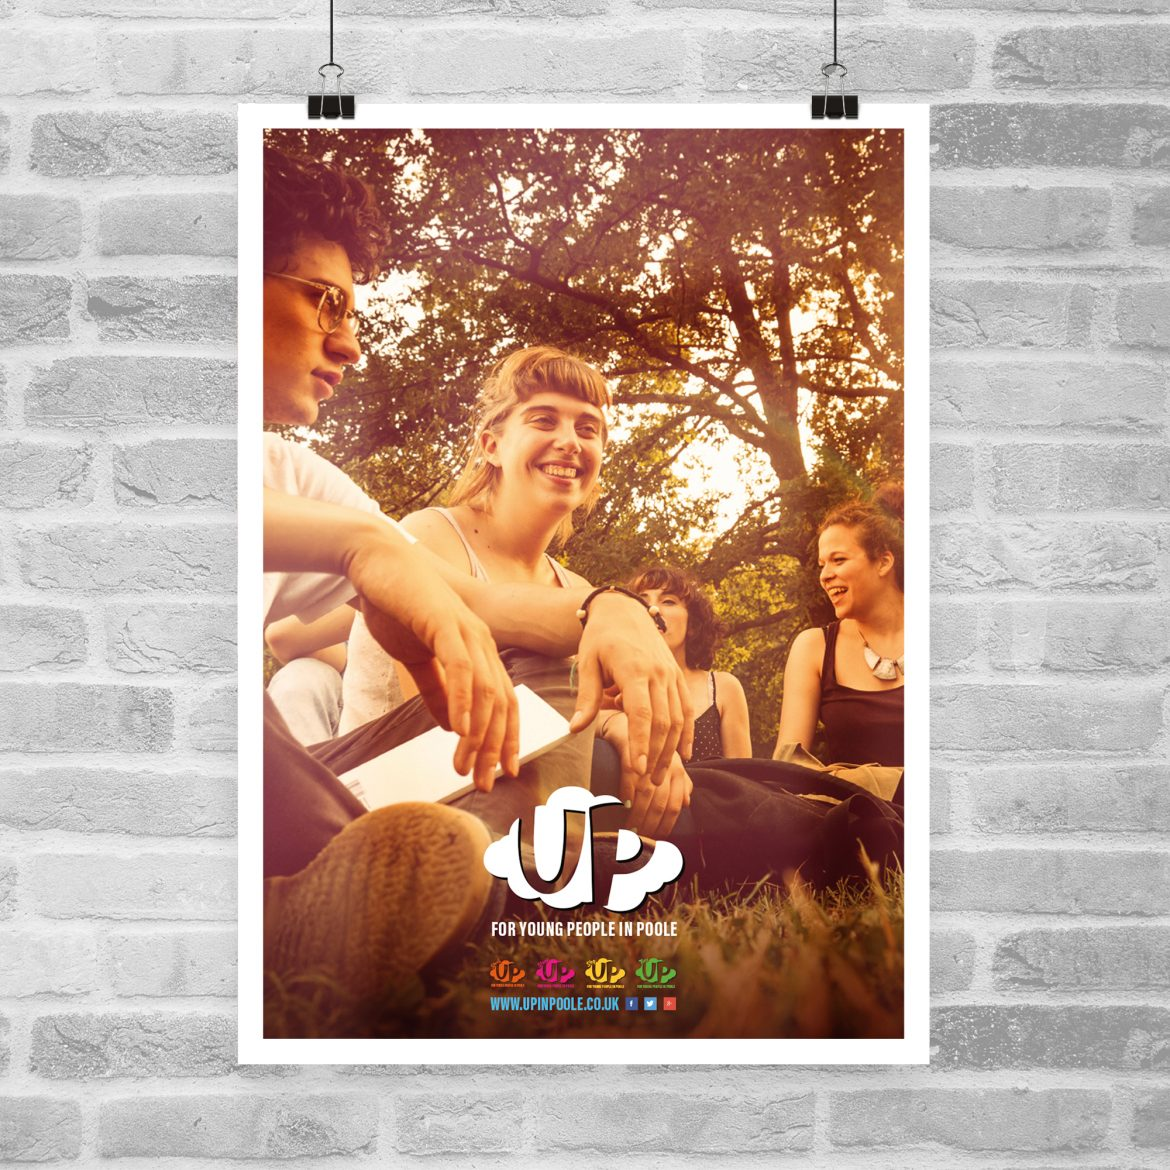 up poole poster design